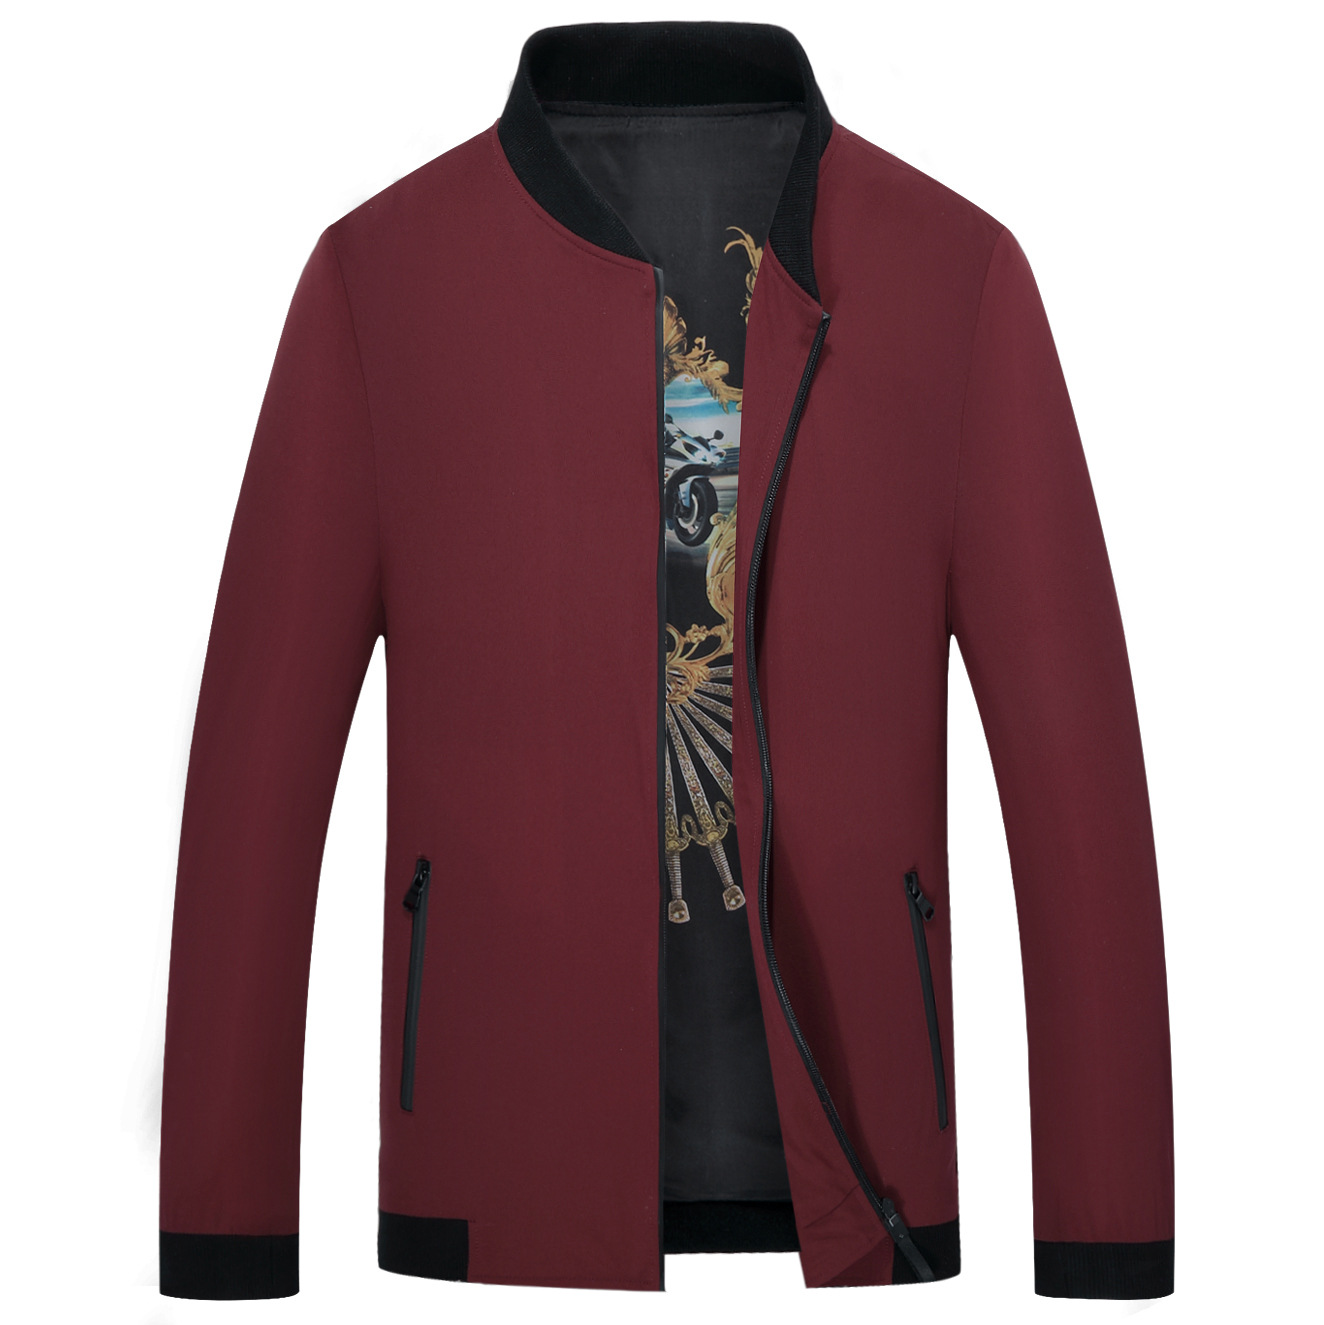 Mens spring jackets fashion Cached